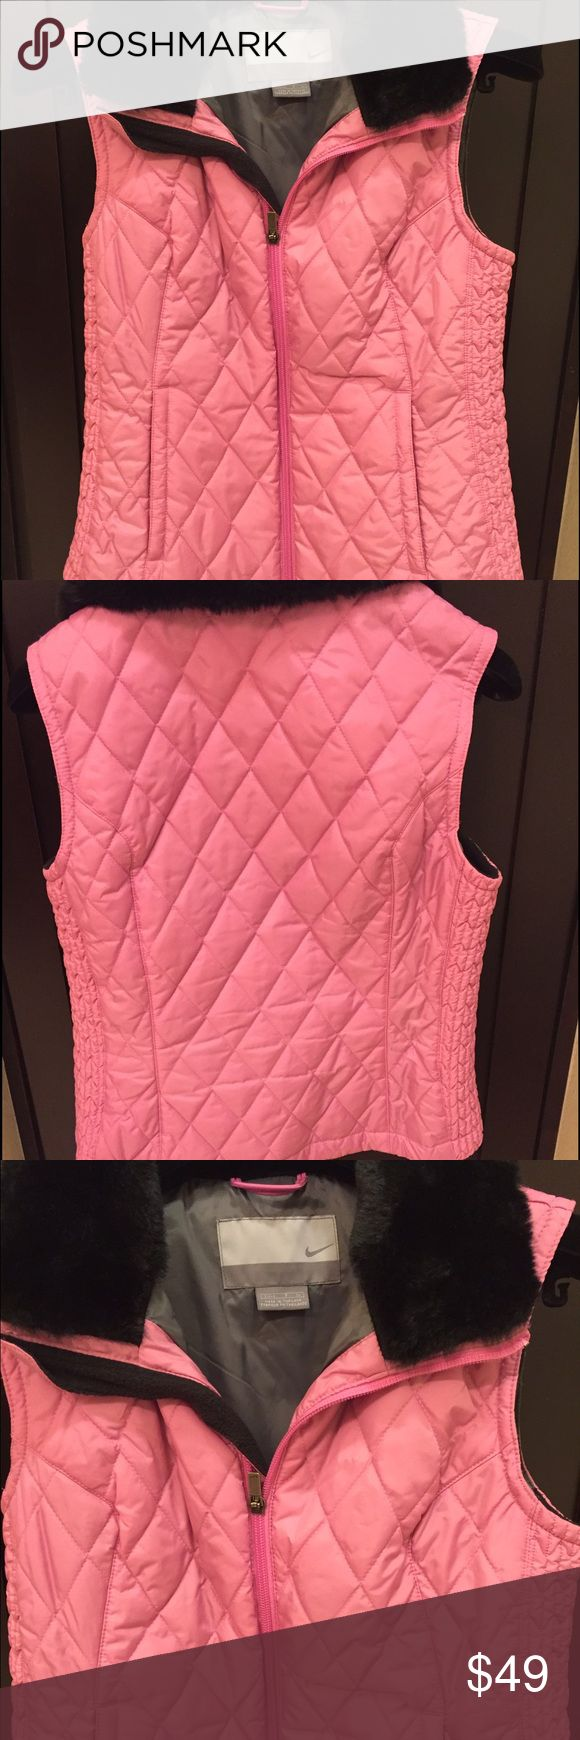 Nike vest Nike quilted size Small with double pockets & special stitching design to accent a narrower waist. Nike Jackets & Coats Vests